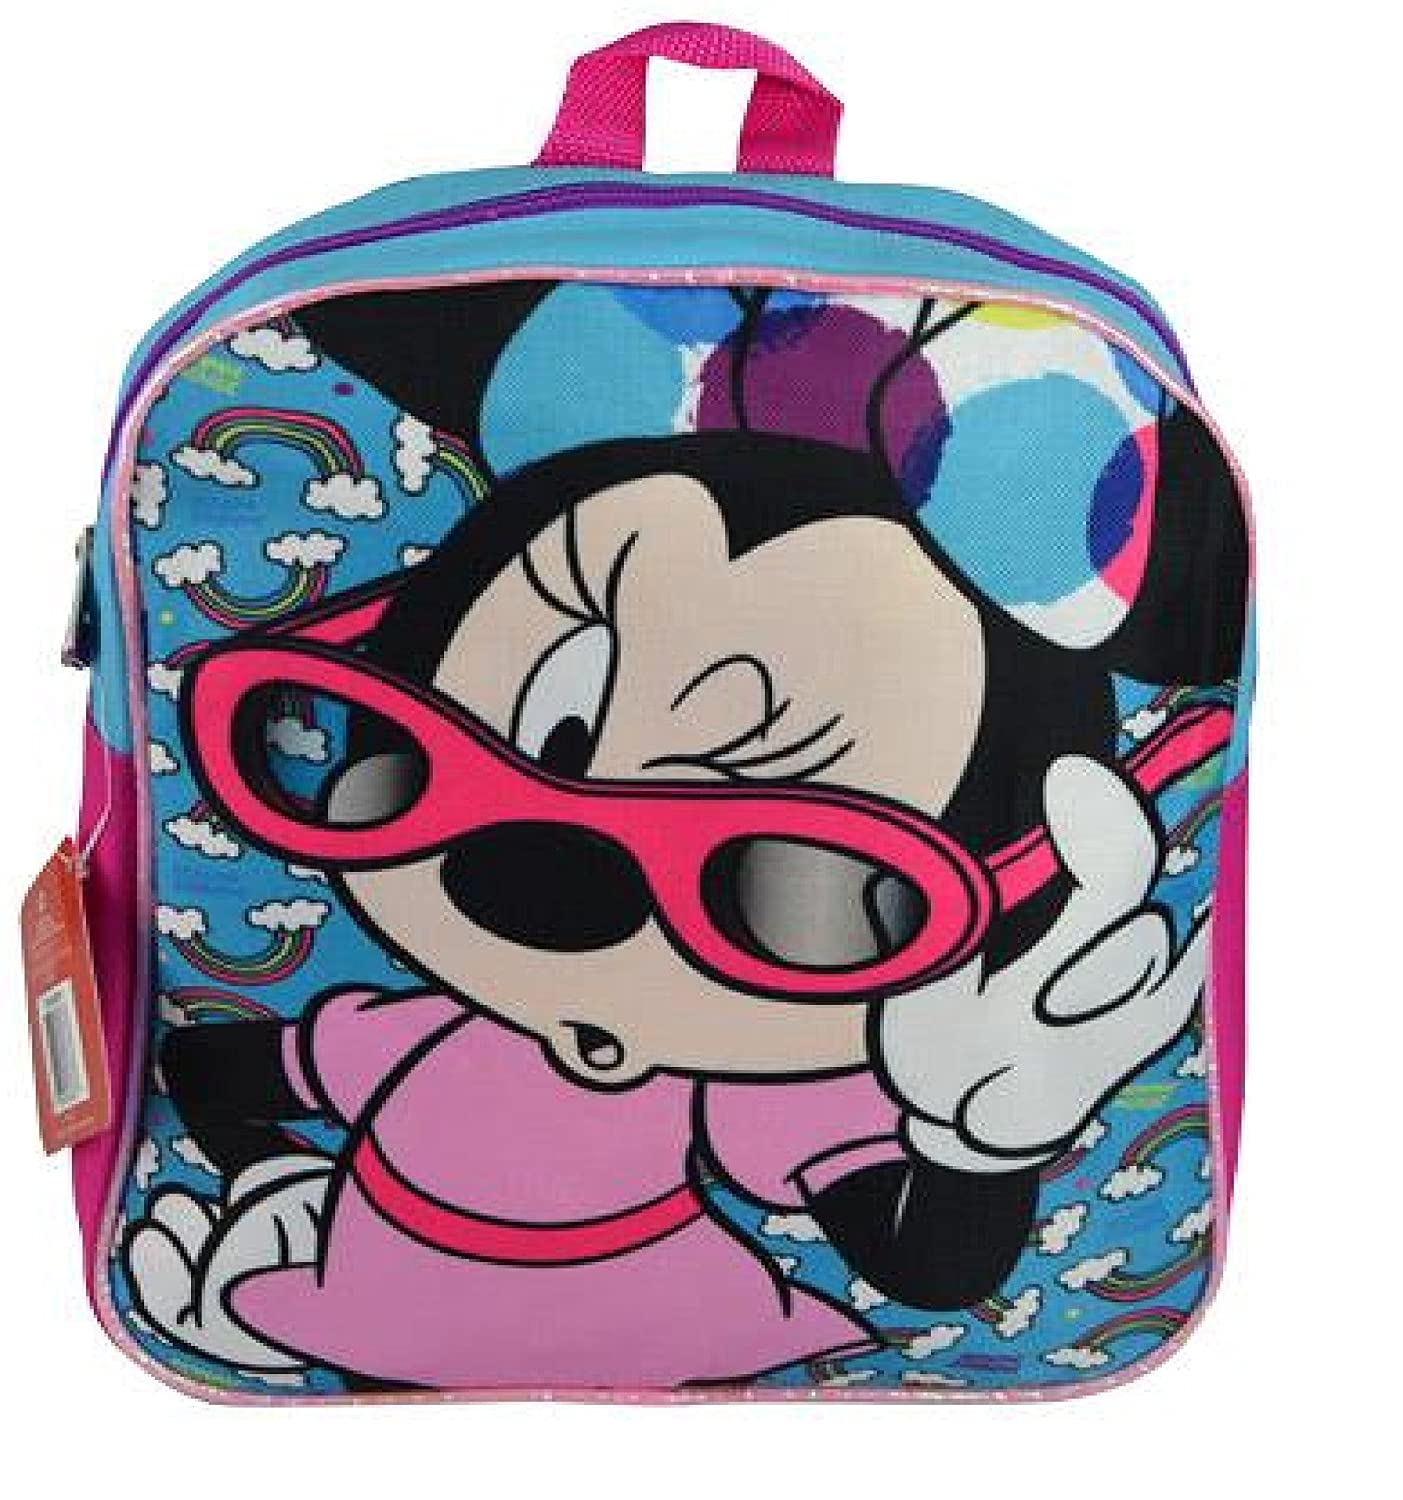 Disney Minnie Mouse 11 Mini Backpack Book Bag One Size Pink